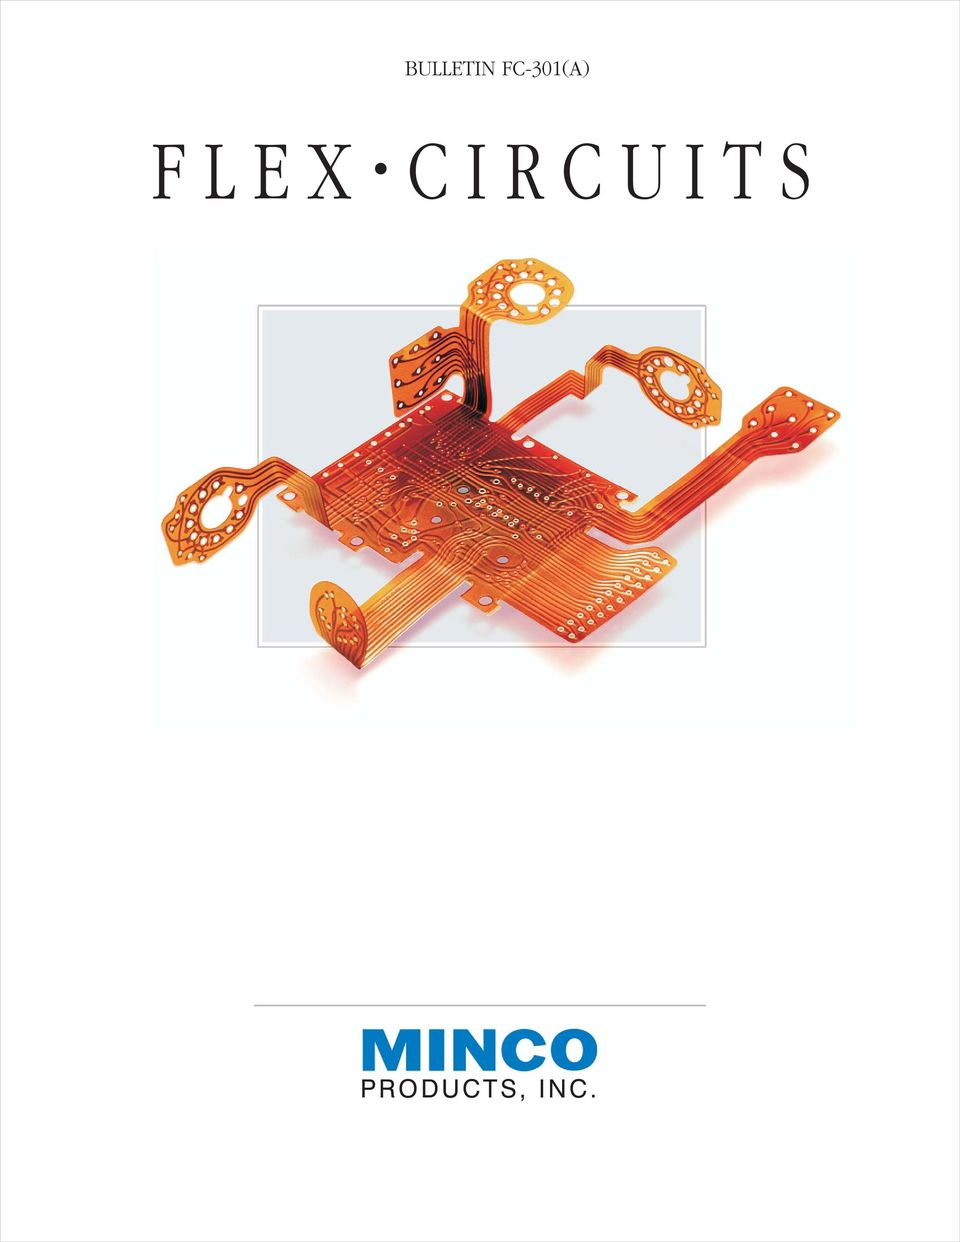 Bulletin Fc 301a Products Inc Pdf Layer 1 Oz Pcb Flexible Printed Circuit Board And Cover Film Supplier 2 Minco The Preferred Source For Precision Flex Circuits Is A Leading Of Circuitry Critical Mil Aerospace Medical